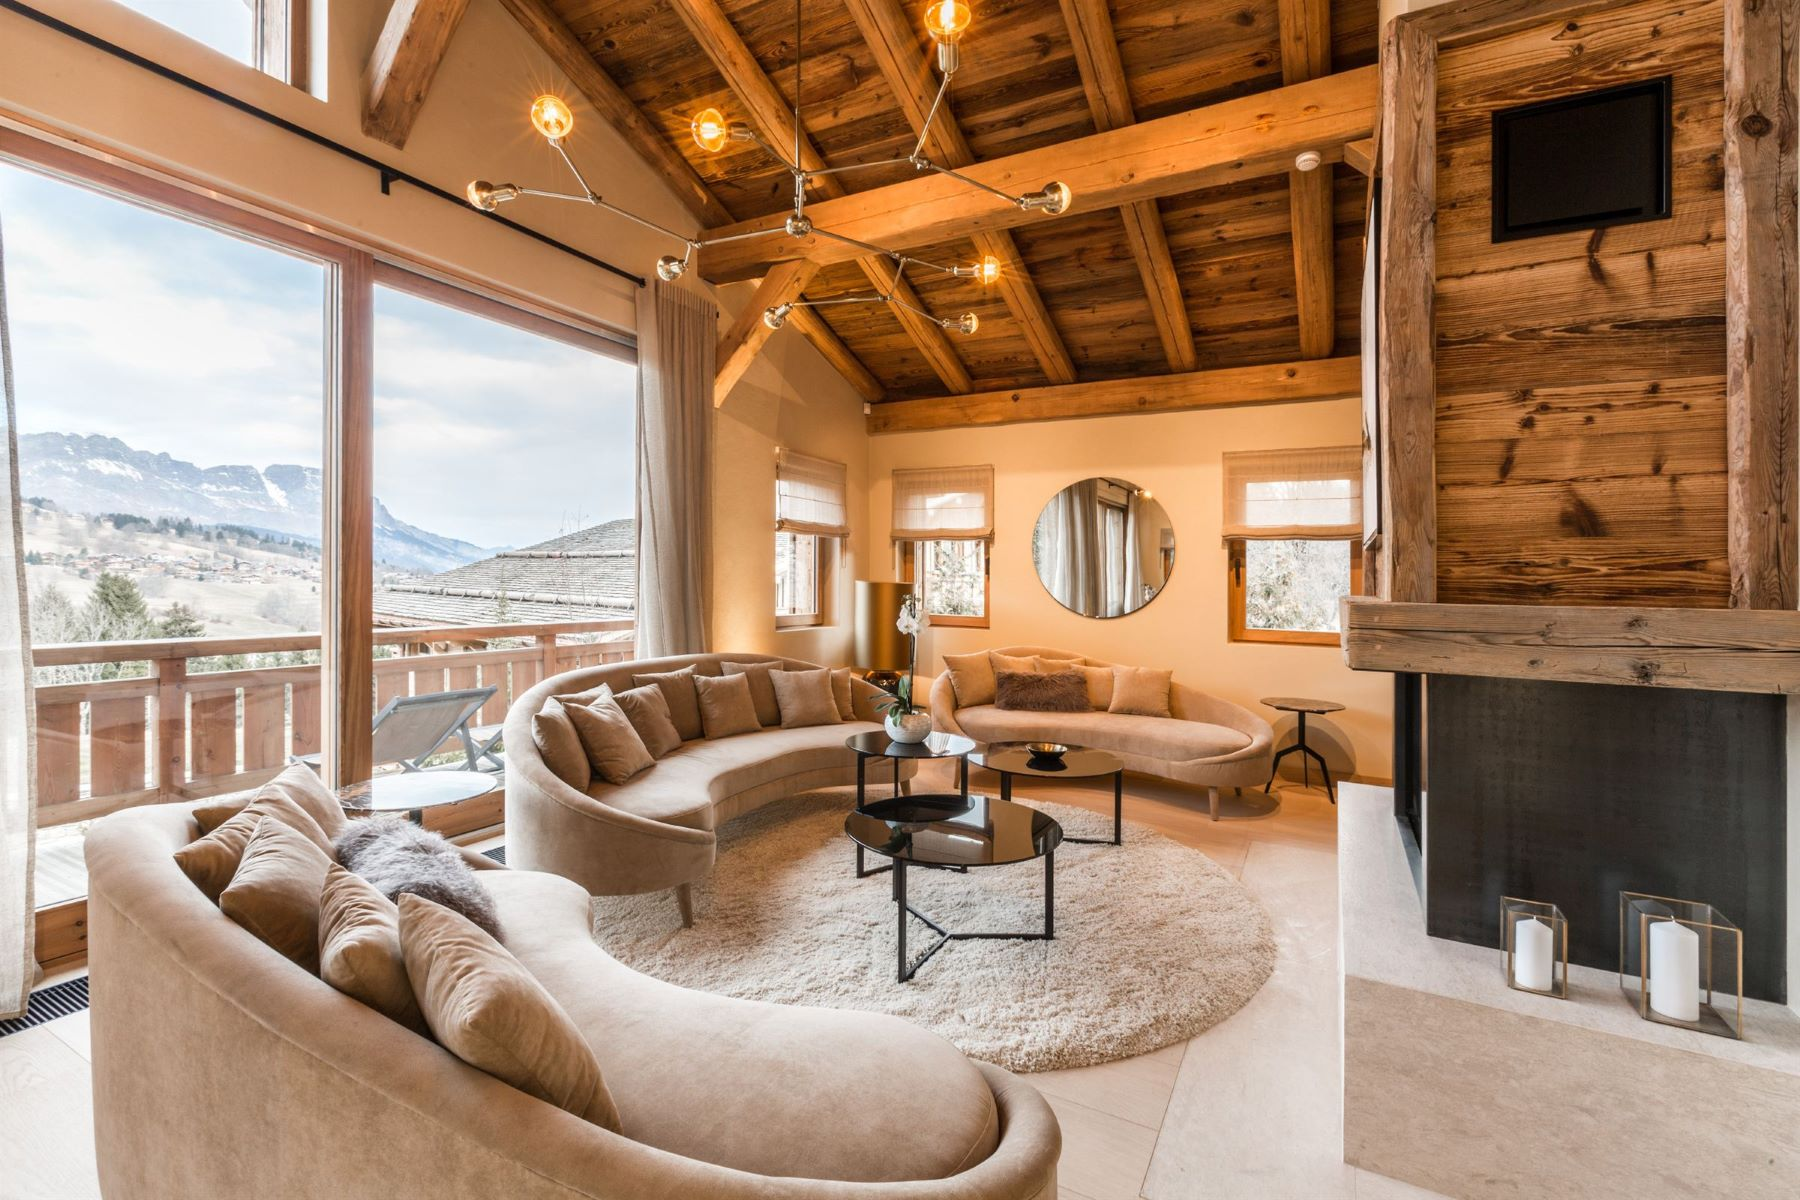 Single Family Homes for Sale at Chalet Gala : beautiful property in the French Alps Megeve, Rhone-Alpes 74120 France